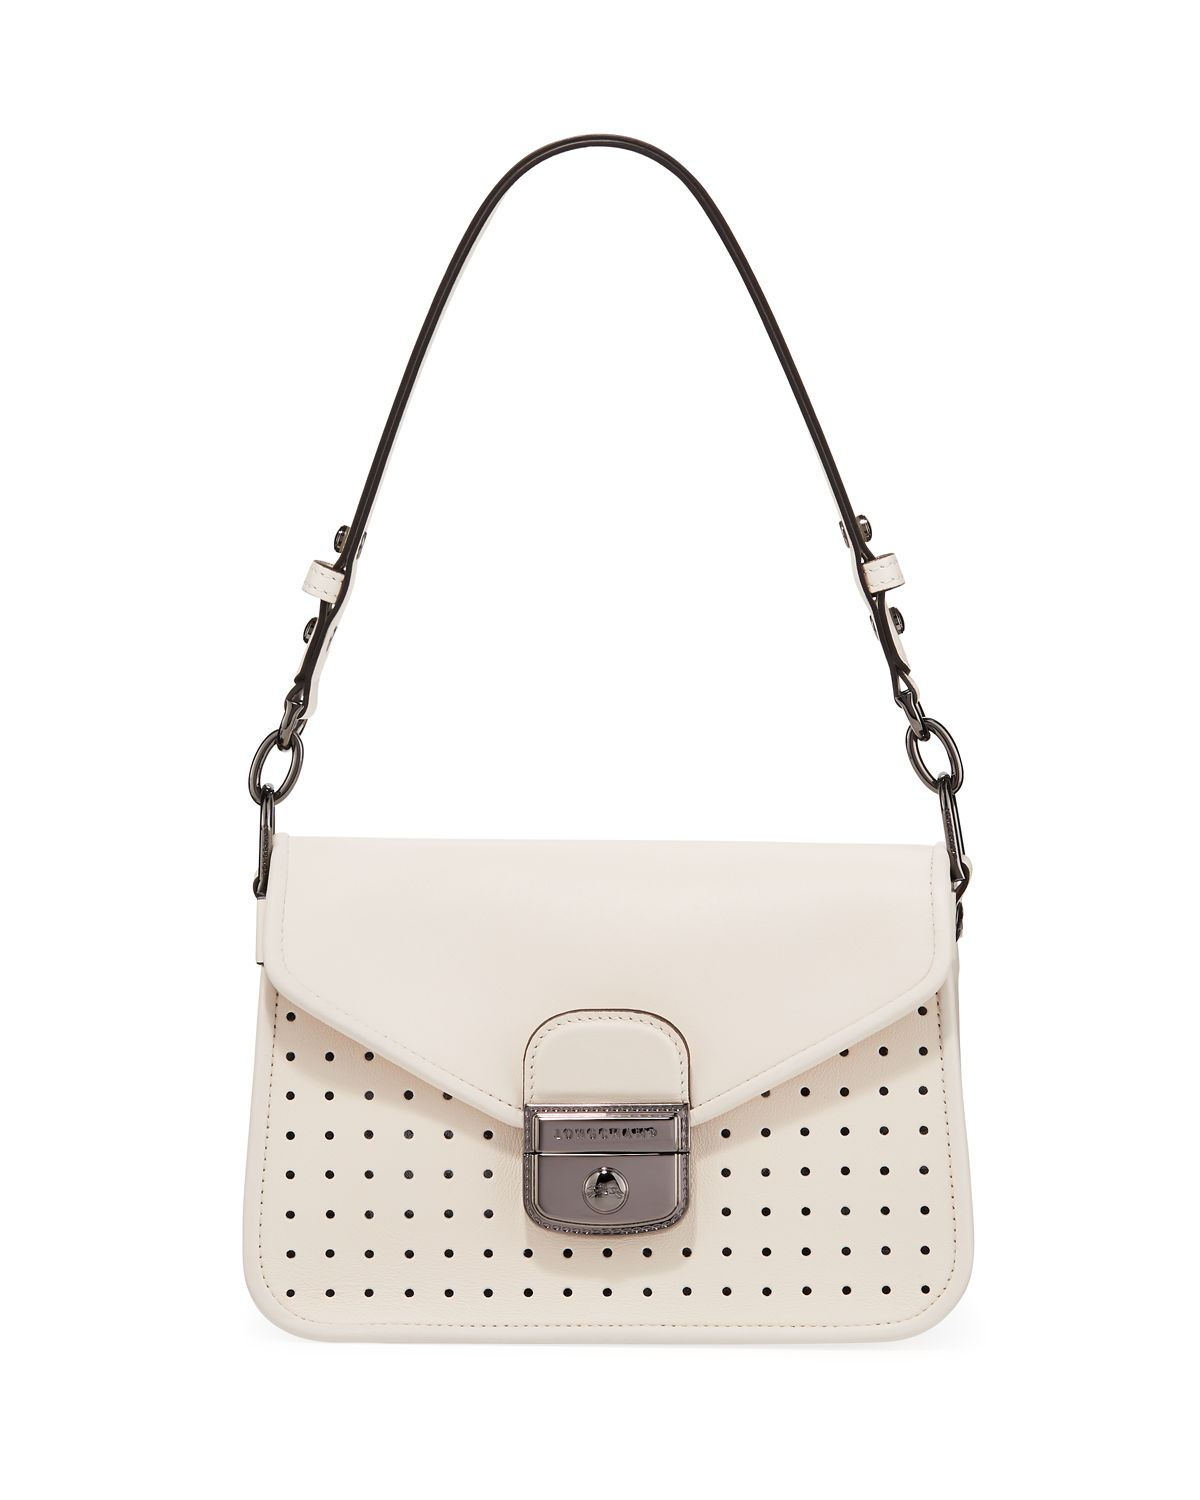 Longchamp Mademoiselle Longchamp Small Crossbody in Natural   Neiman ... 244eb0df27